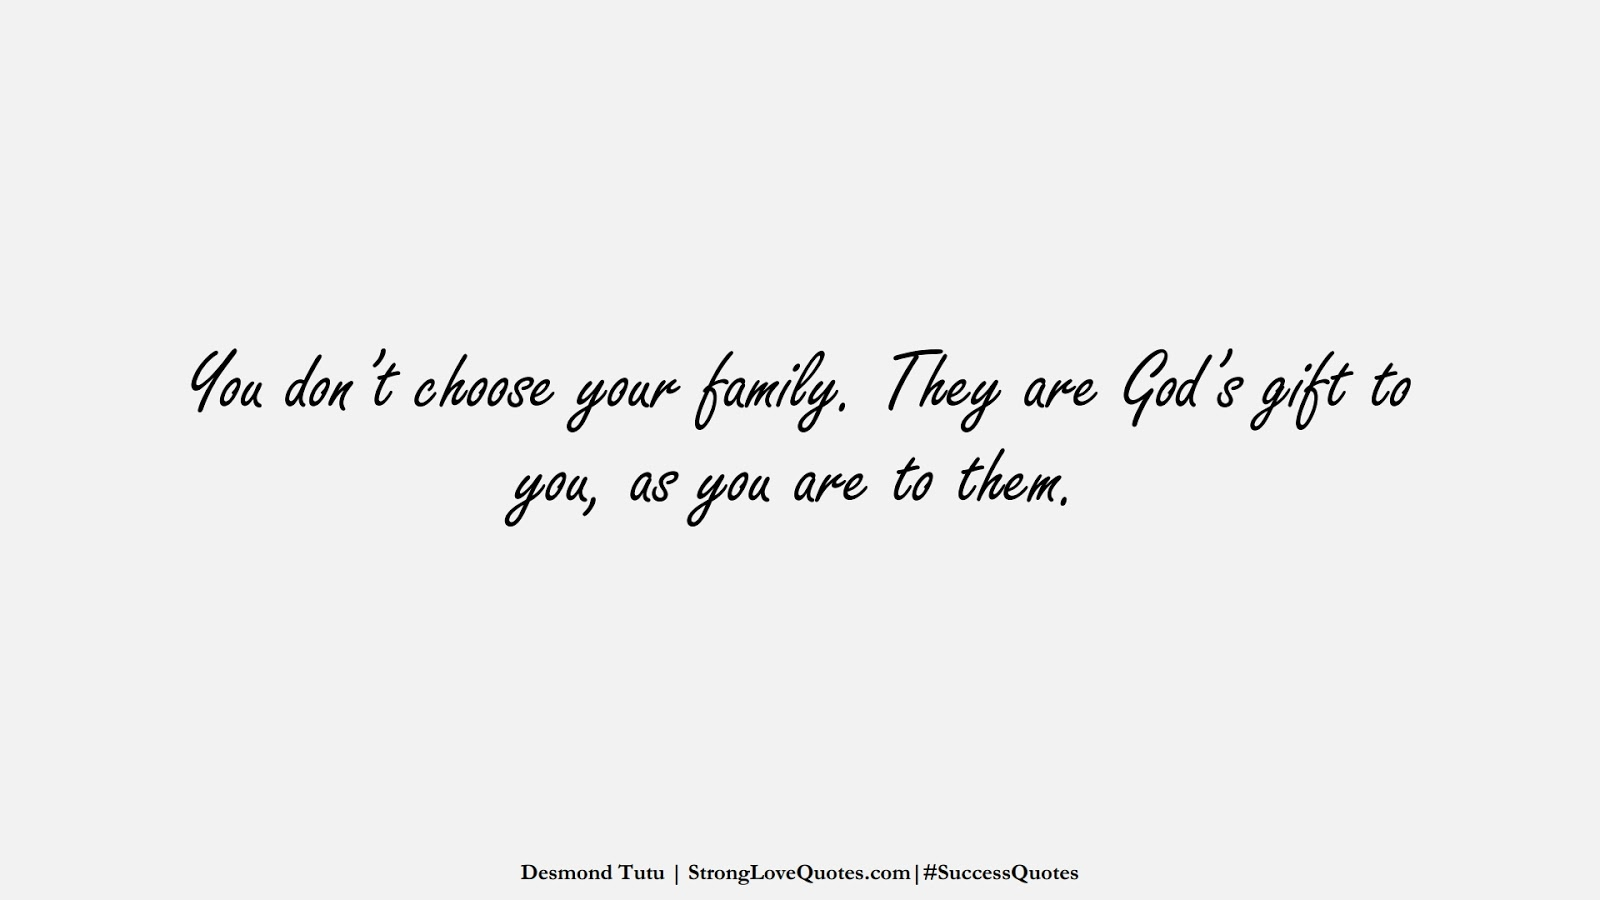 You don't choose your family. They are God's gift to you, as you are to them. (Desmond Tutu);  #SuccessQuotes